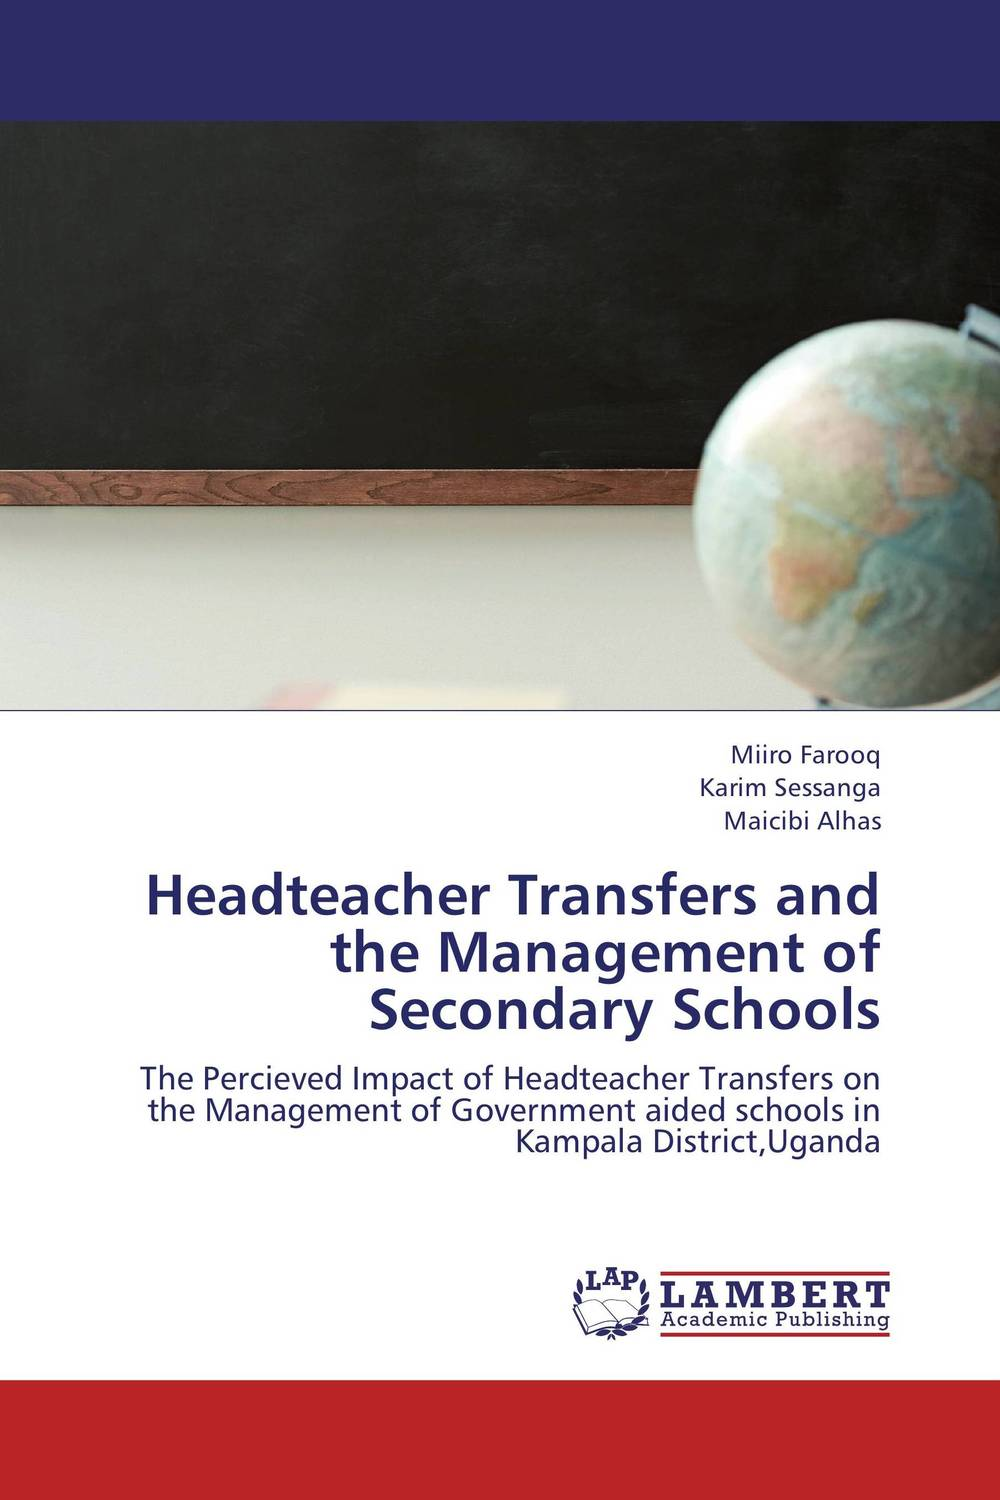 Headteacher Transfers and the Management of Secondary Schools the analysis of management of schools